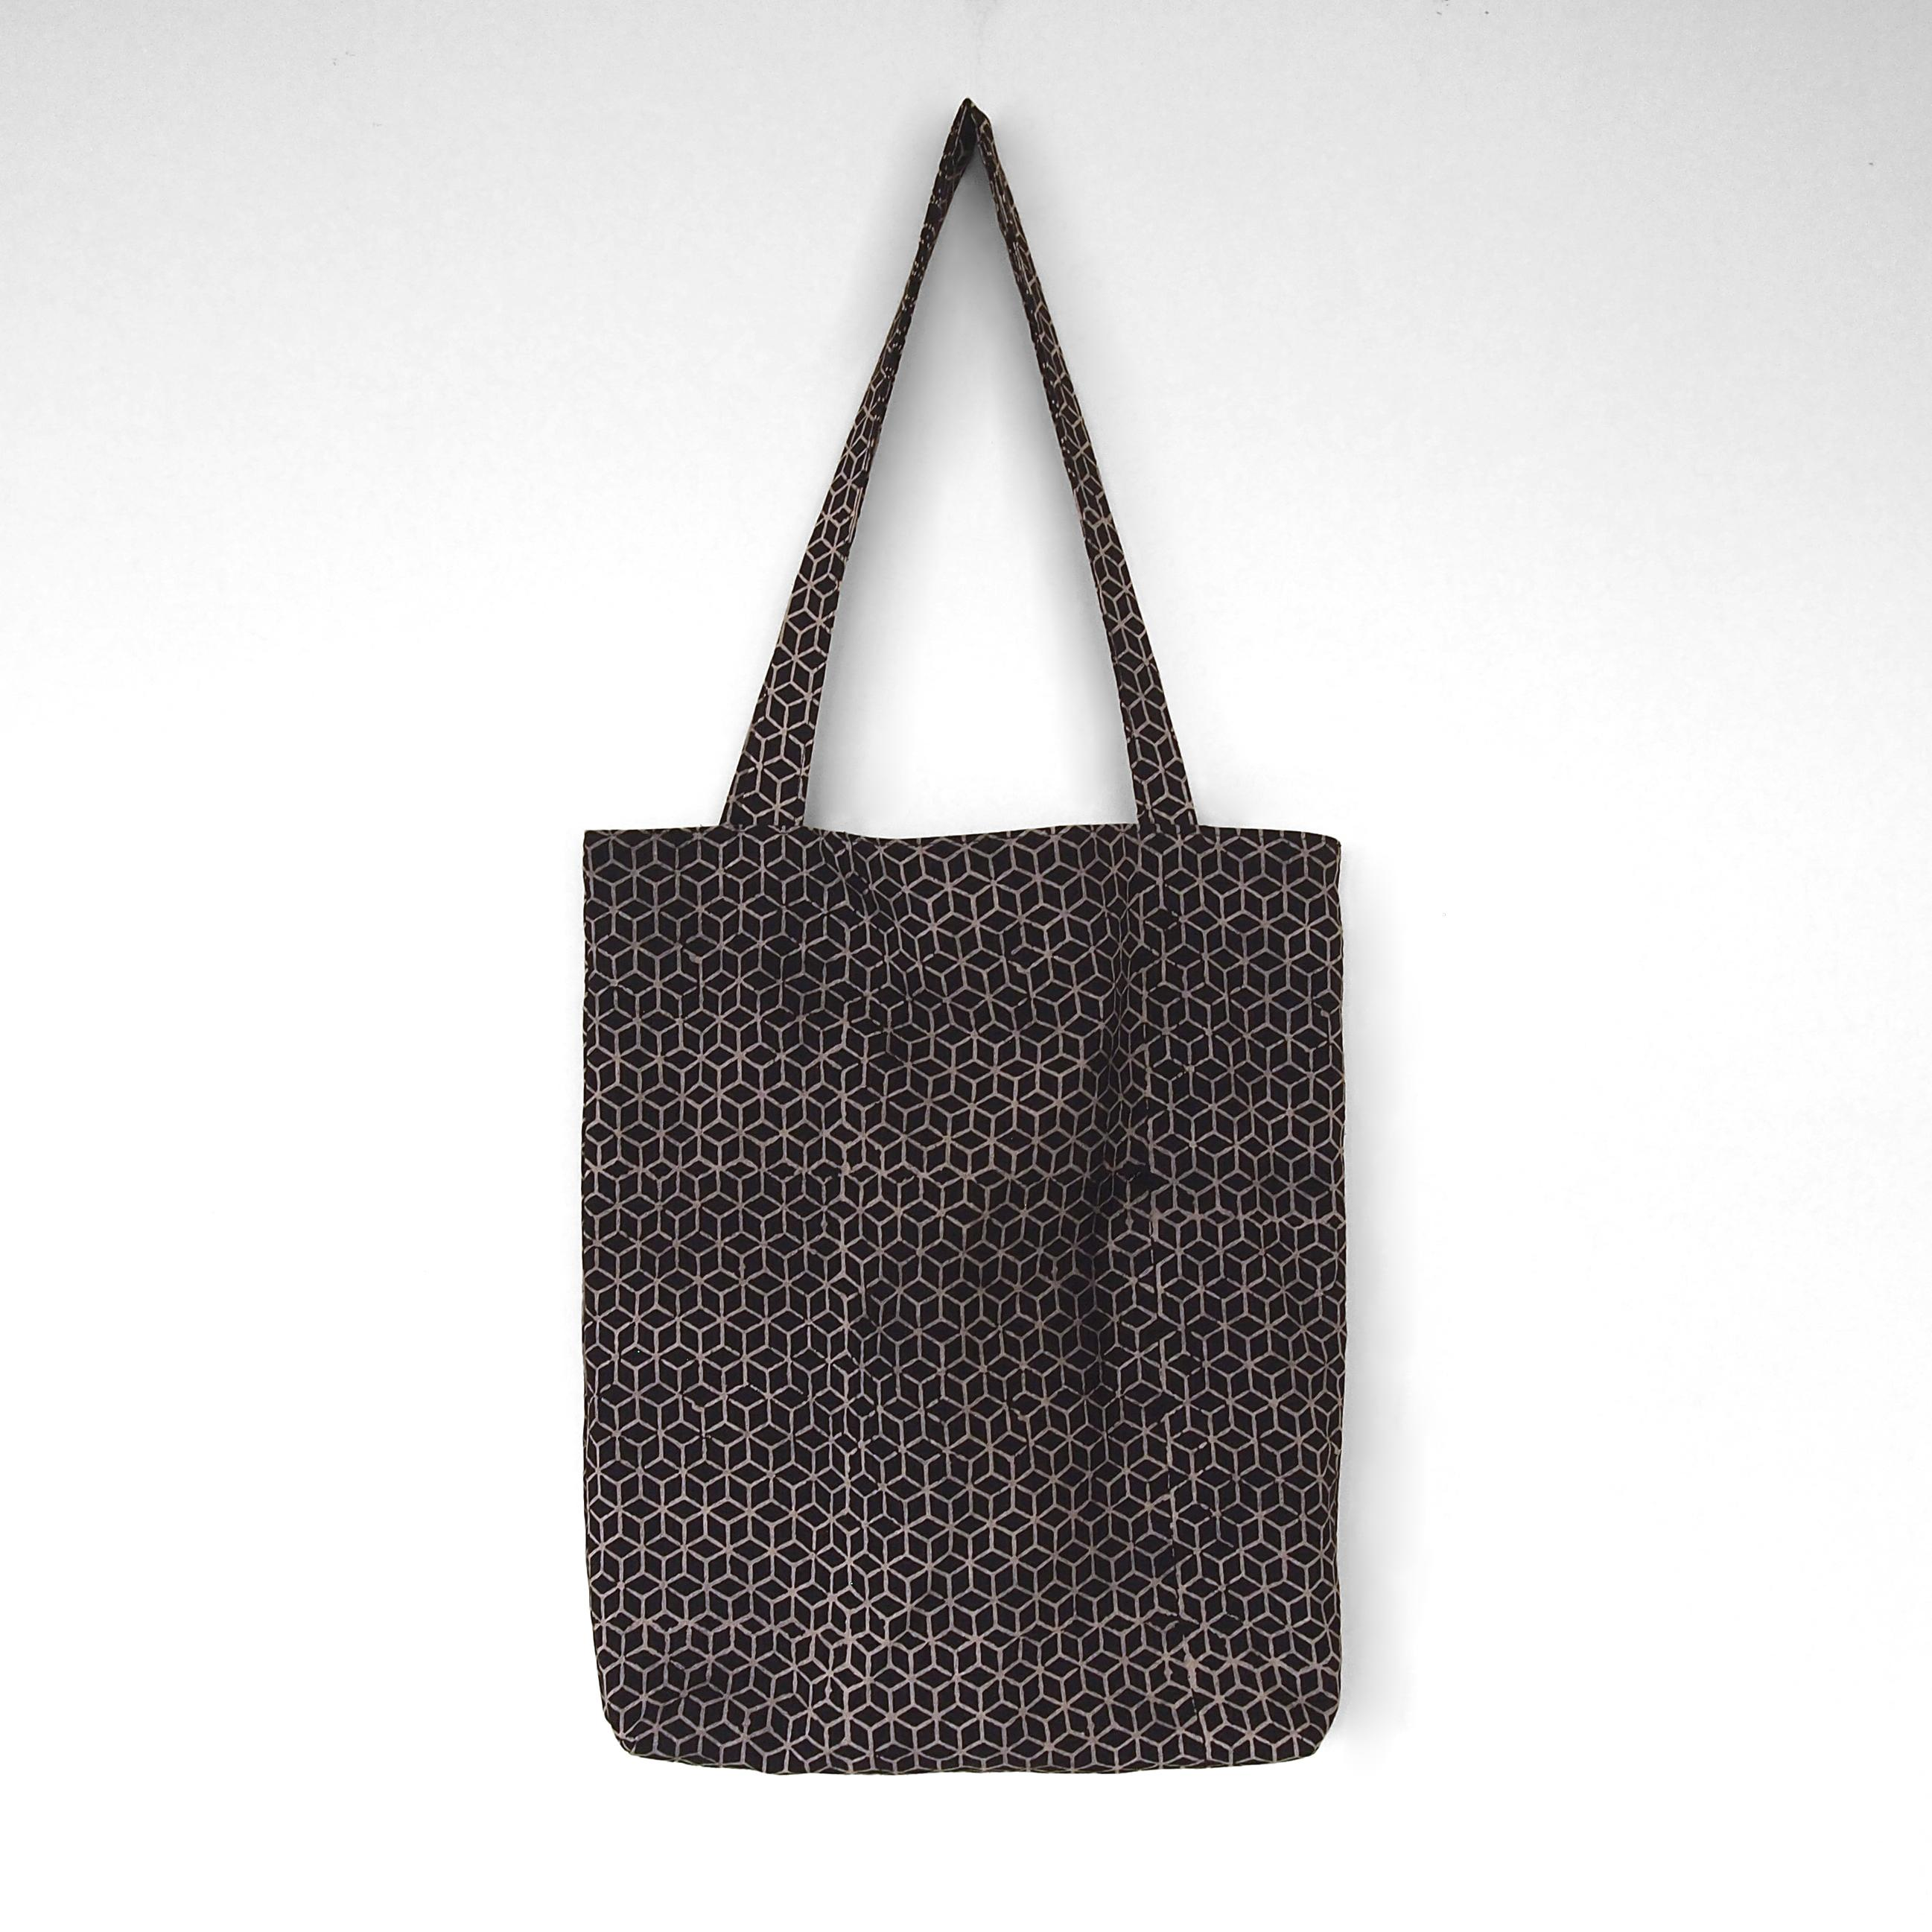 block printed cotton tote bag, natural dye, black, beige tumbling block design, lined with black cotton, closed